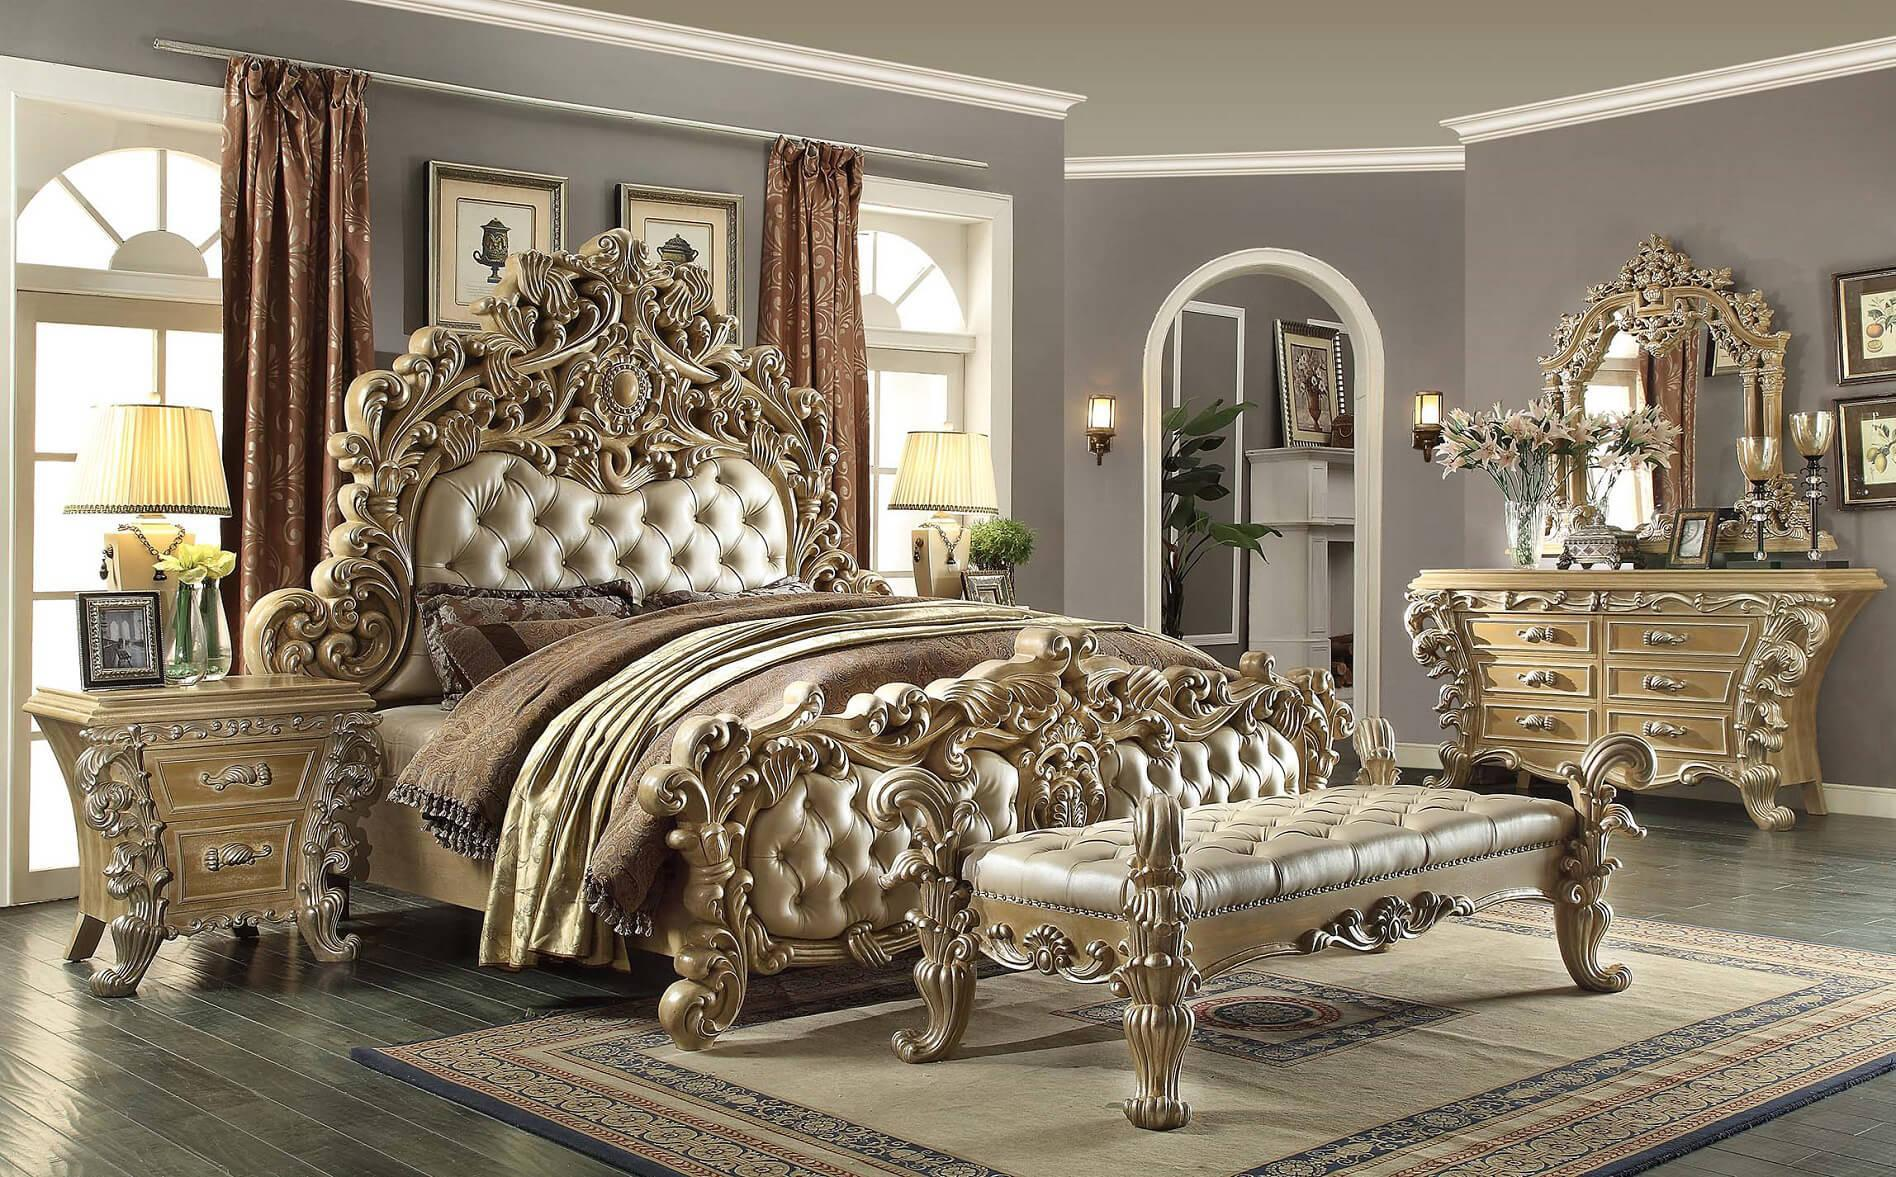 Image of: Bedroom Victorian Furniture Style